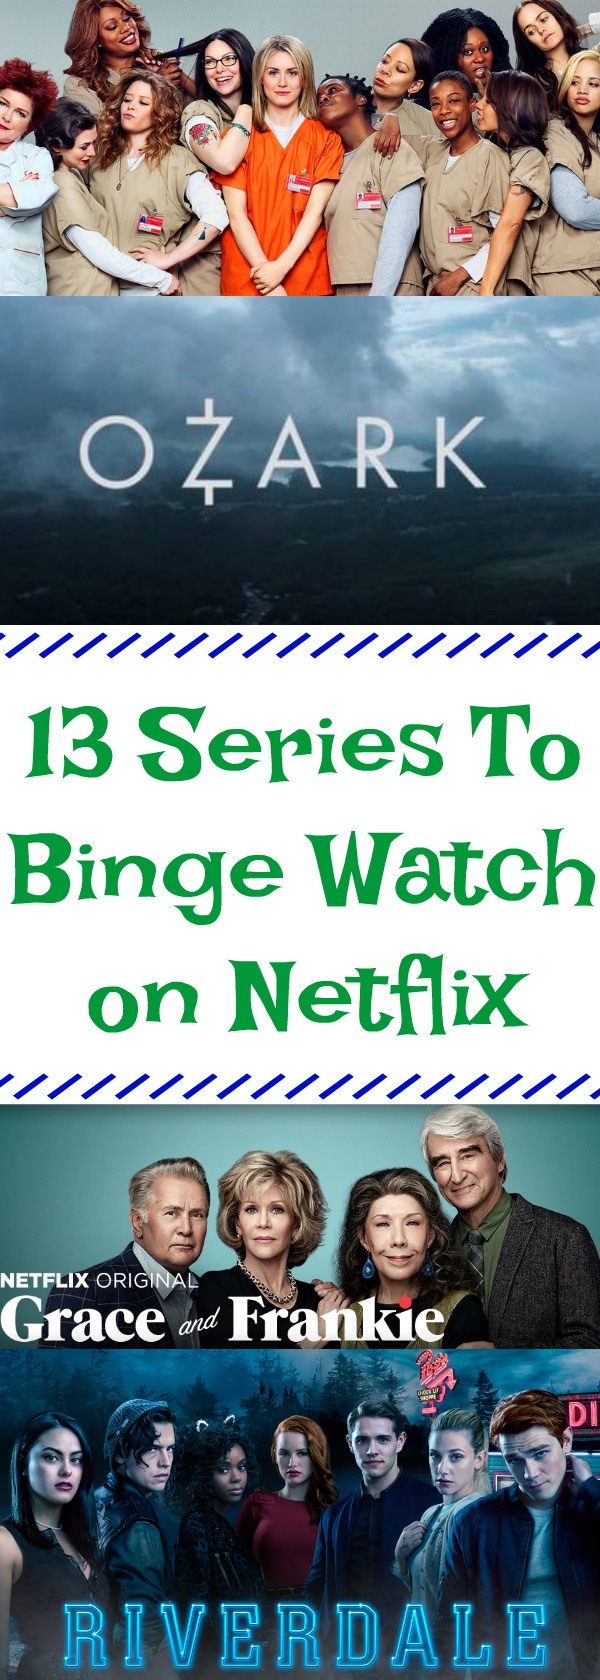 Series To Watch